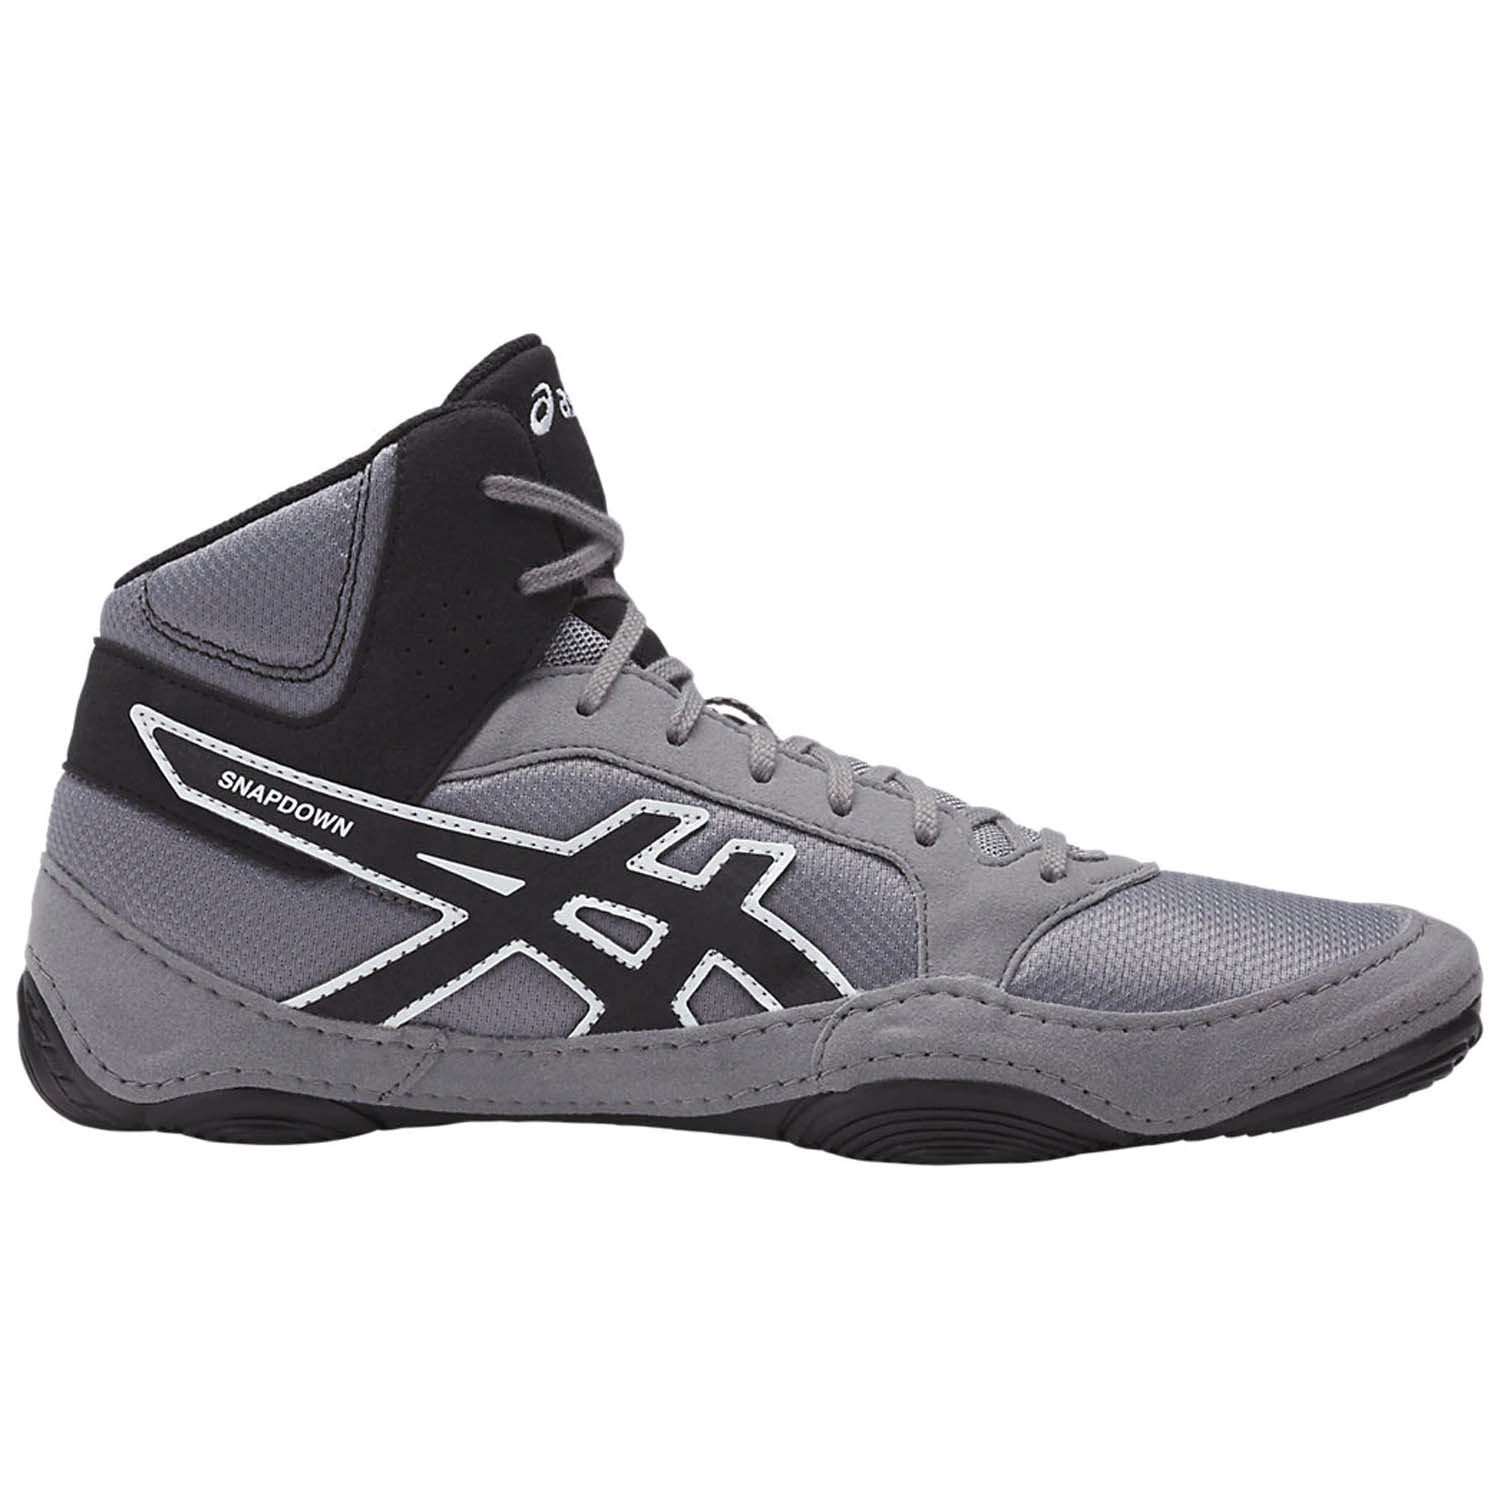 ASICS Men's Snapdown 2 Wrestling Shoe, Black/Aluminum/White, 8 Medium US by ASICS